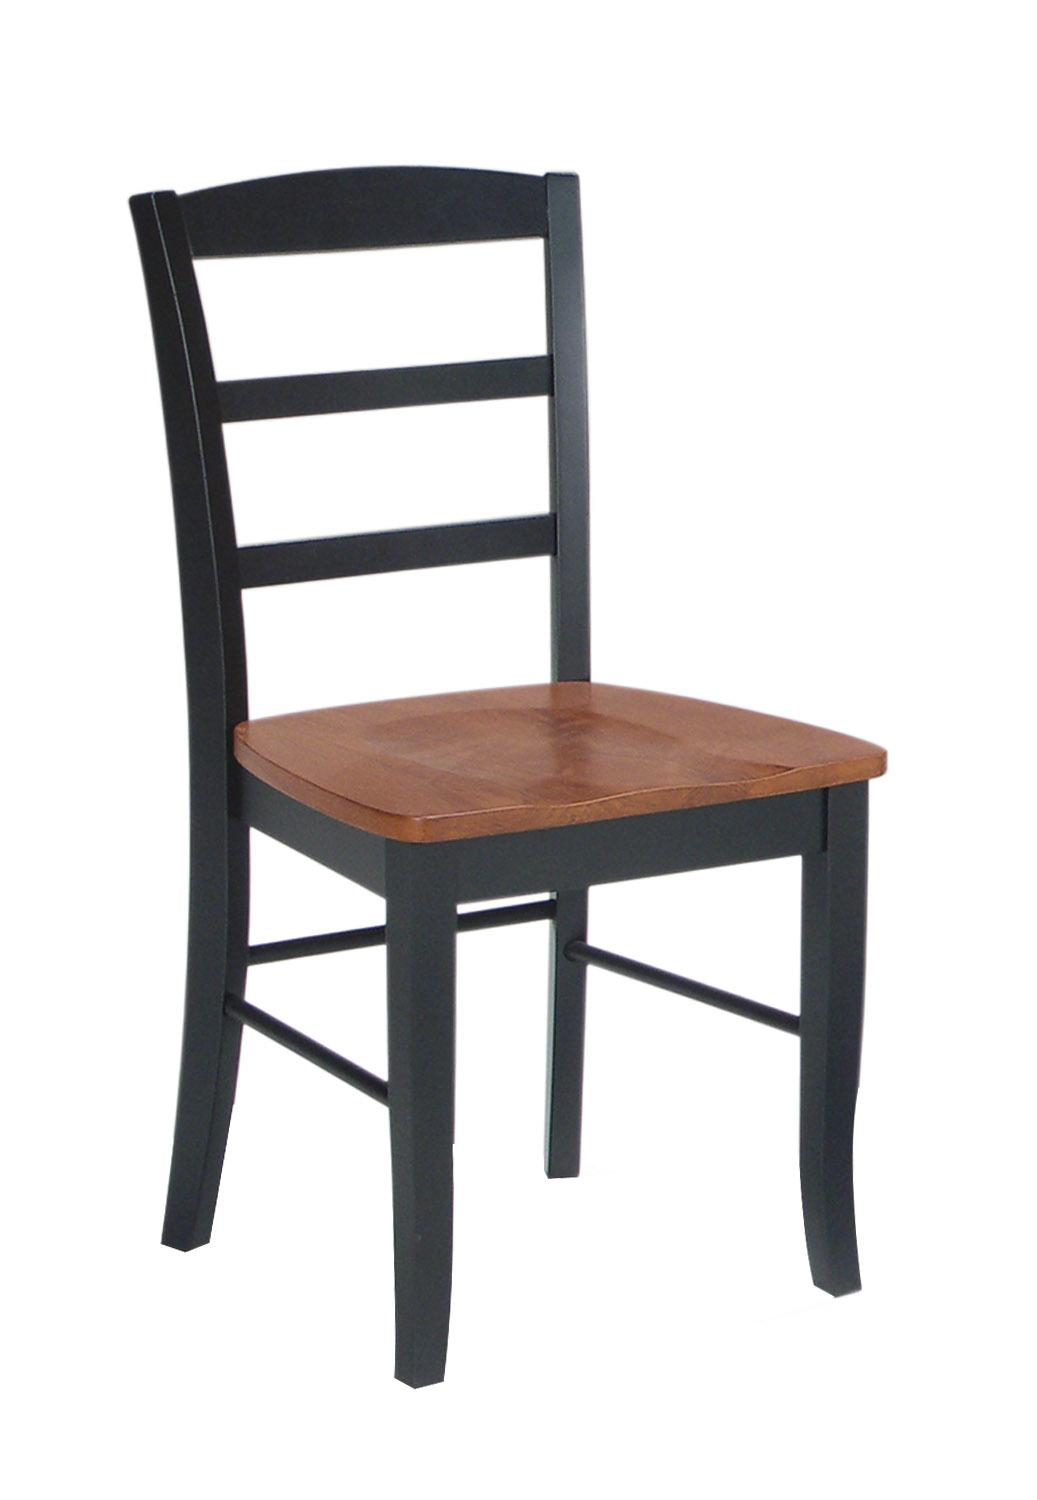 John Thomas Dining Essentials Ladderback Side Chair - Item Number: C57-2